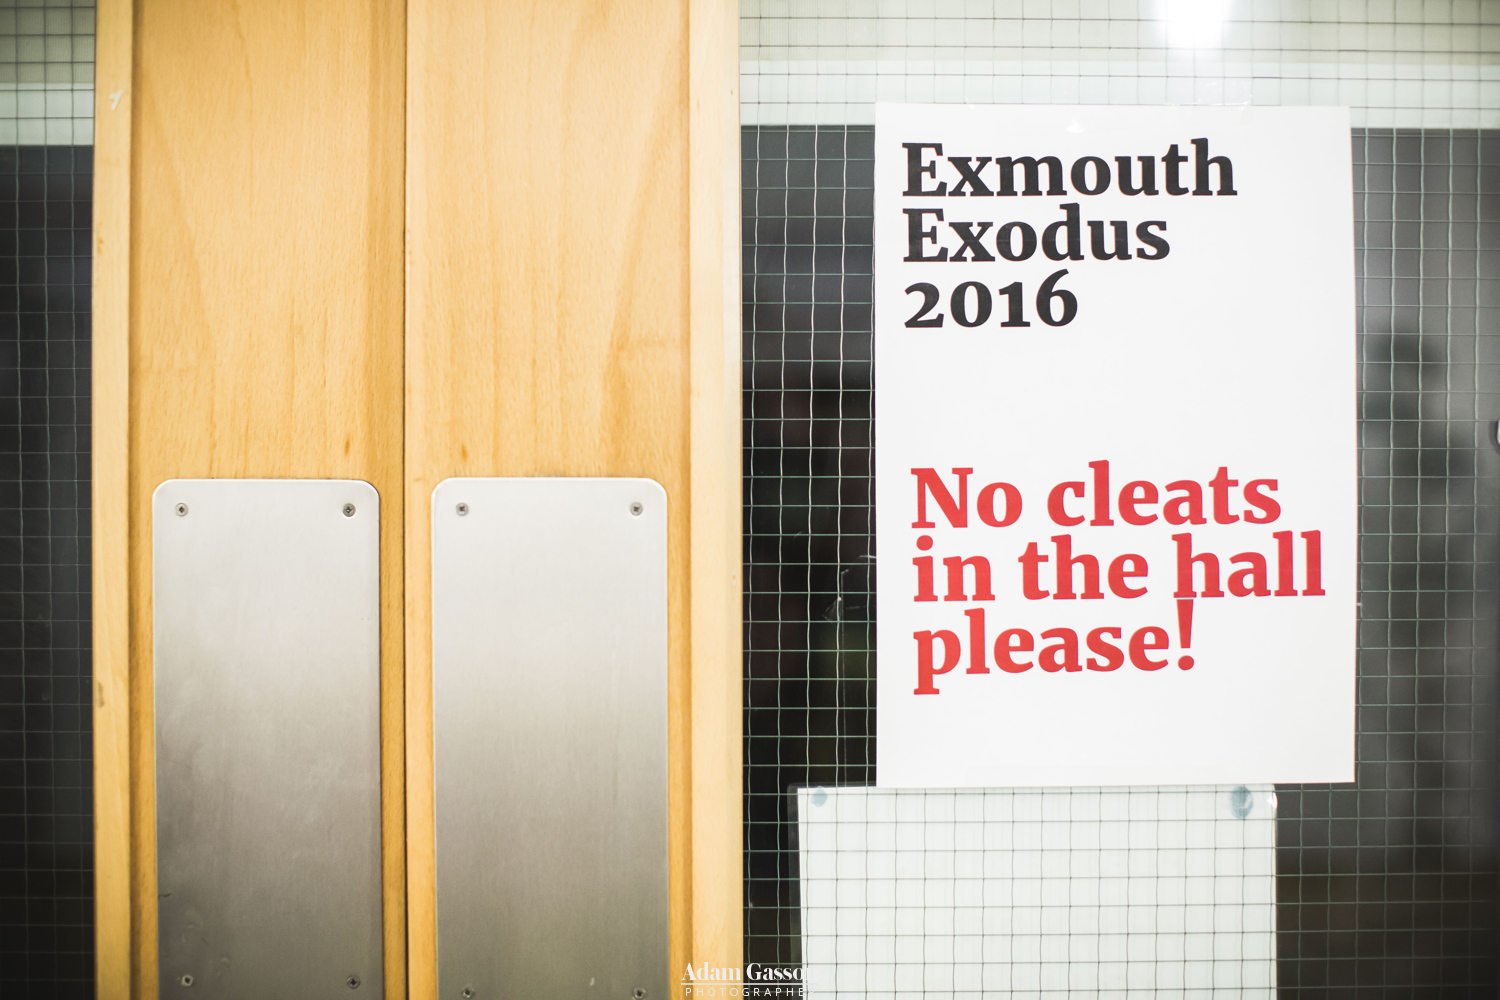 Exmouth Exodus photos